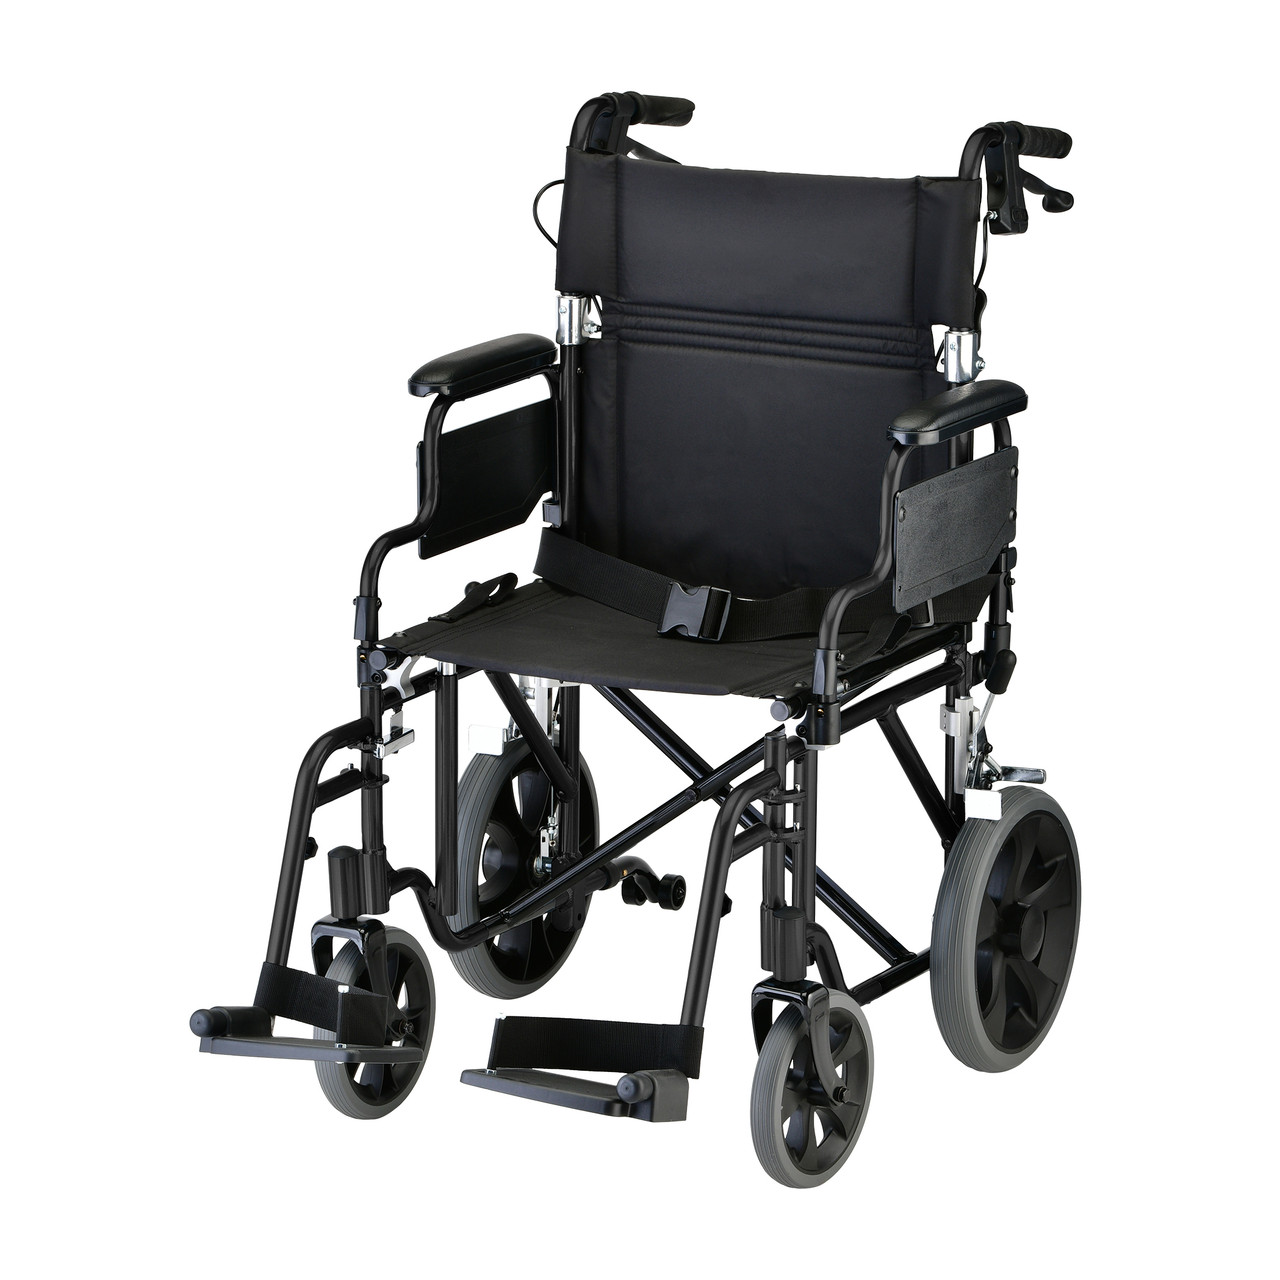 Nova model 352 19 inch transport chair with hand brakes black color